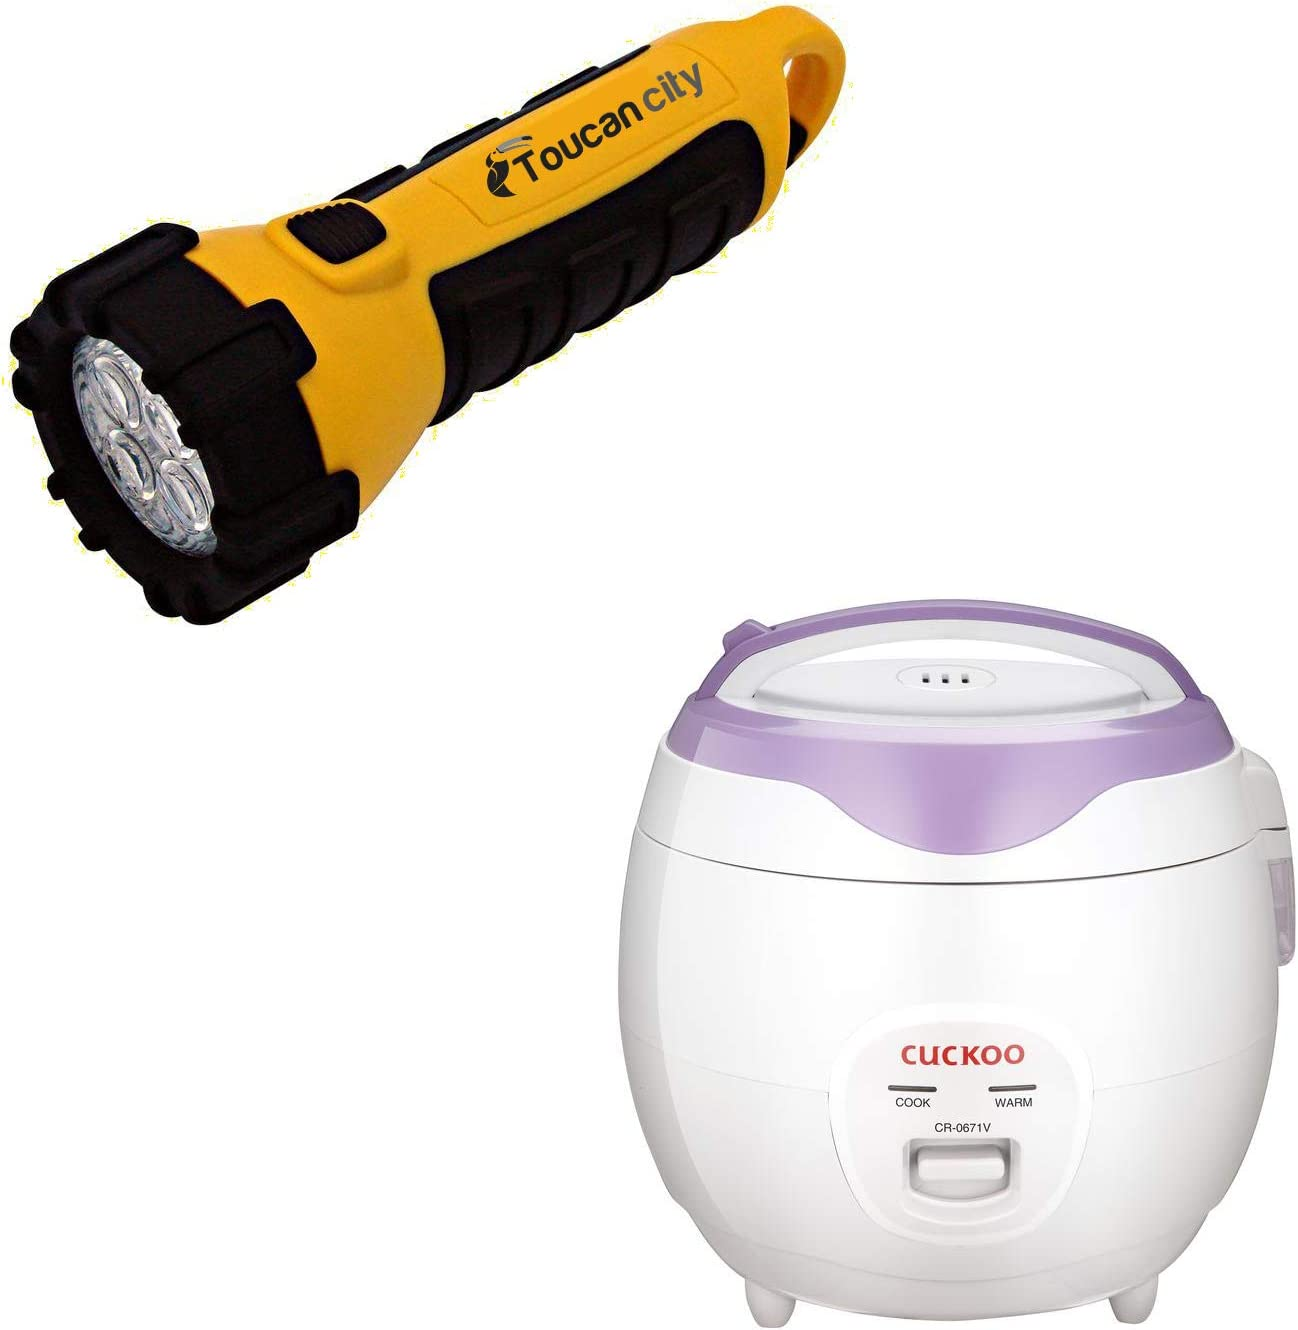 Toucan City LED Flashlight and Cuckoo 3.2 qt. 6-Cup White/Violet Electric Rice Cooker and Warmer CR-0671V